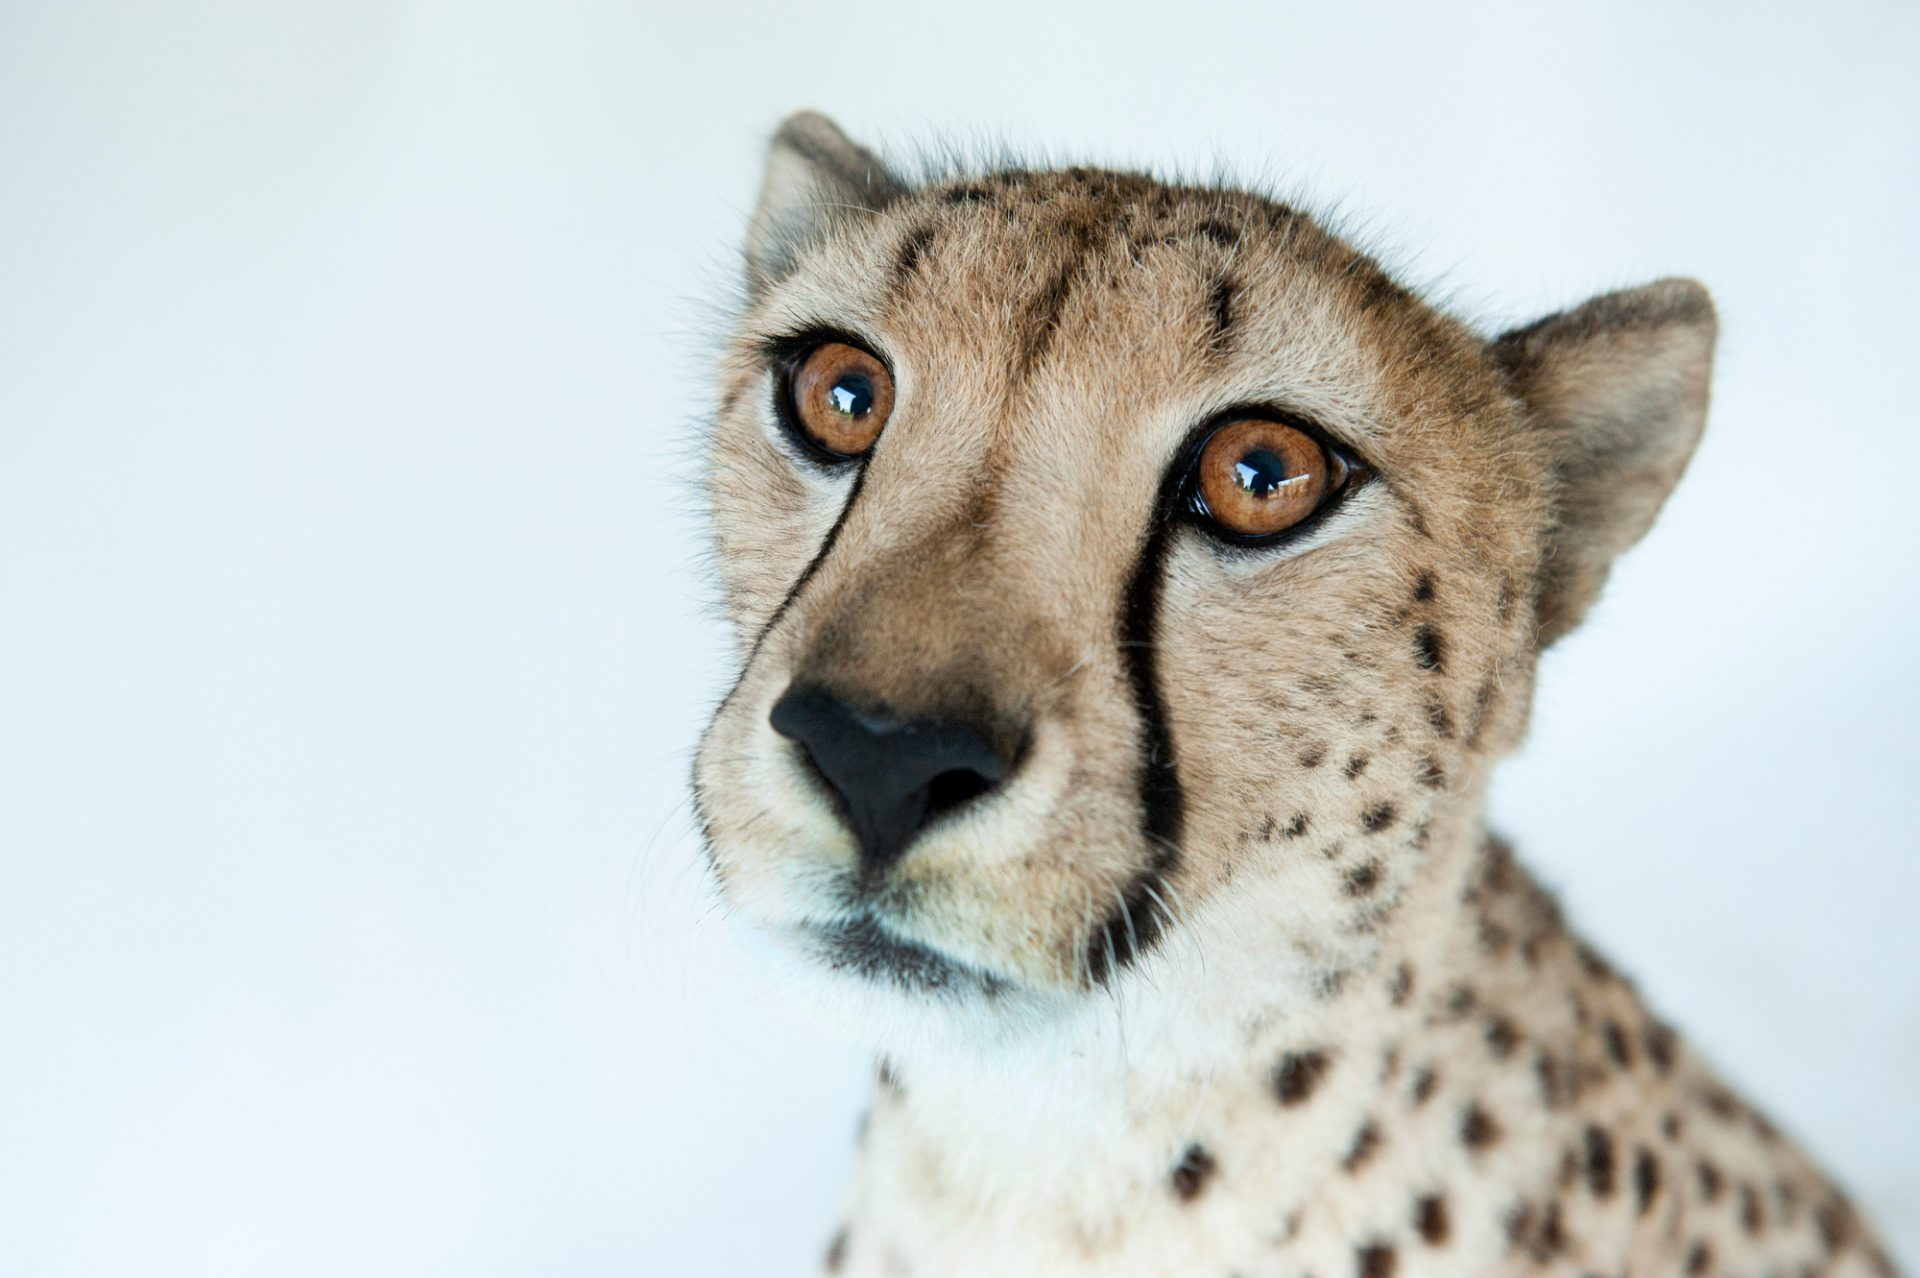 Photo: Hasari, a federally endangered three-year-old cheetah, at White Oak Conservation Center.